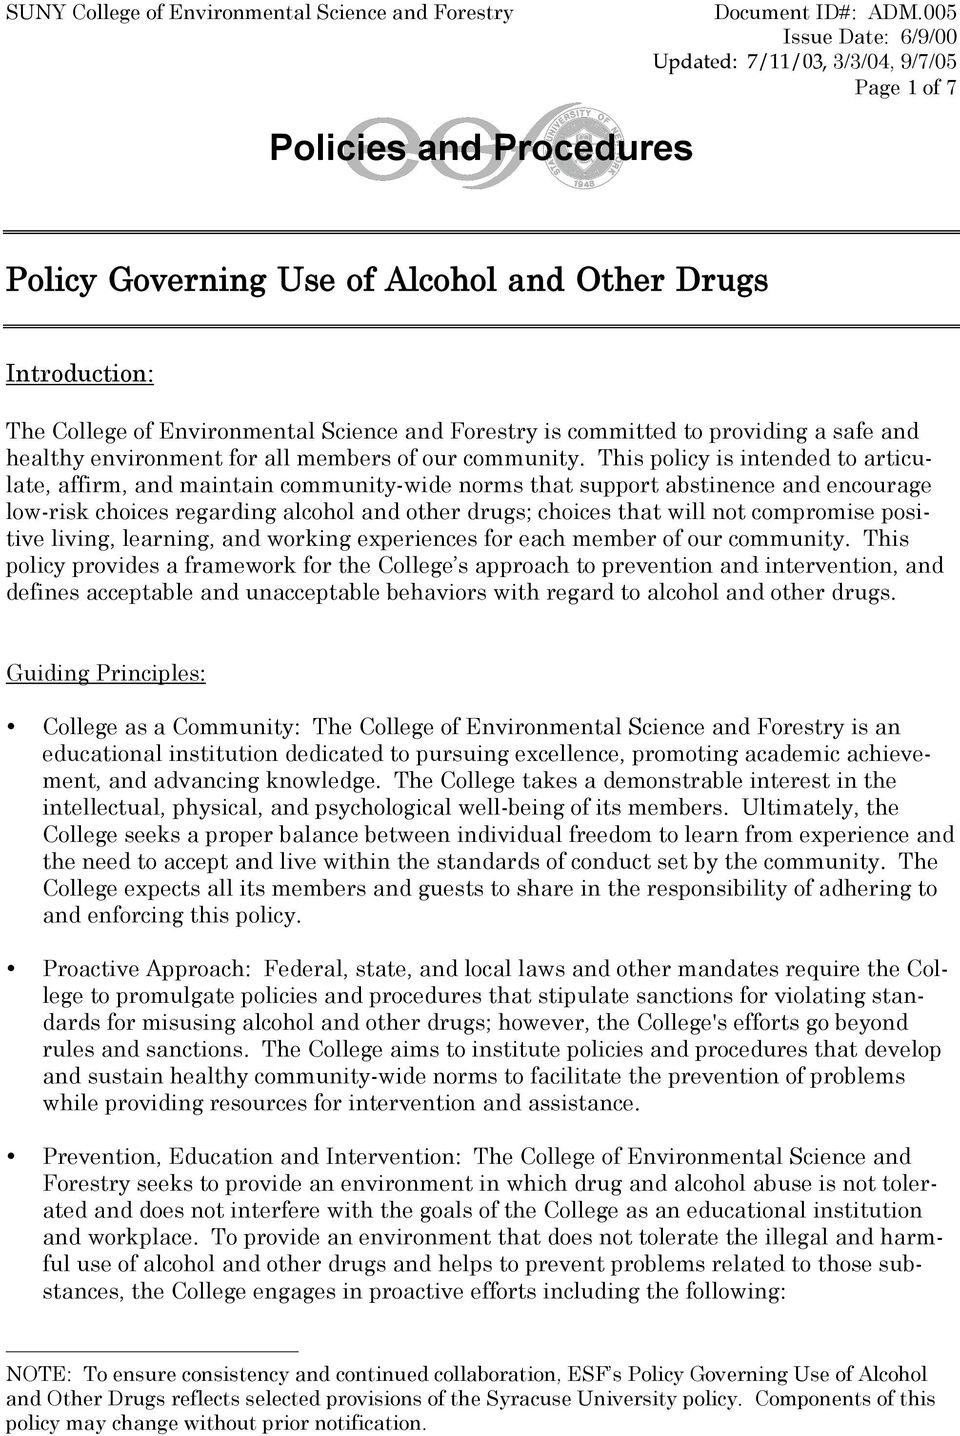 This policy is intended to articulate, affirm, and maintain community-wide norms that support abstinence and encourage low-risk choices regarding alcohol and other drugs; choices that will not